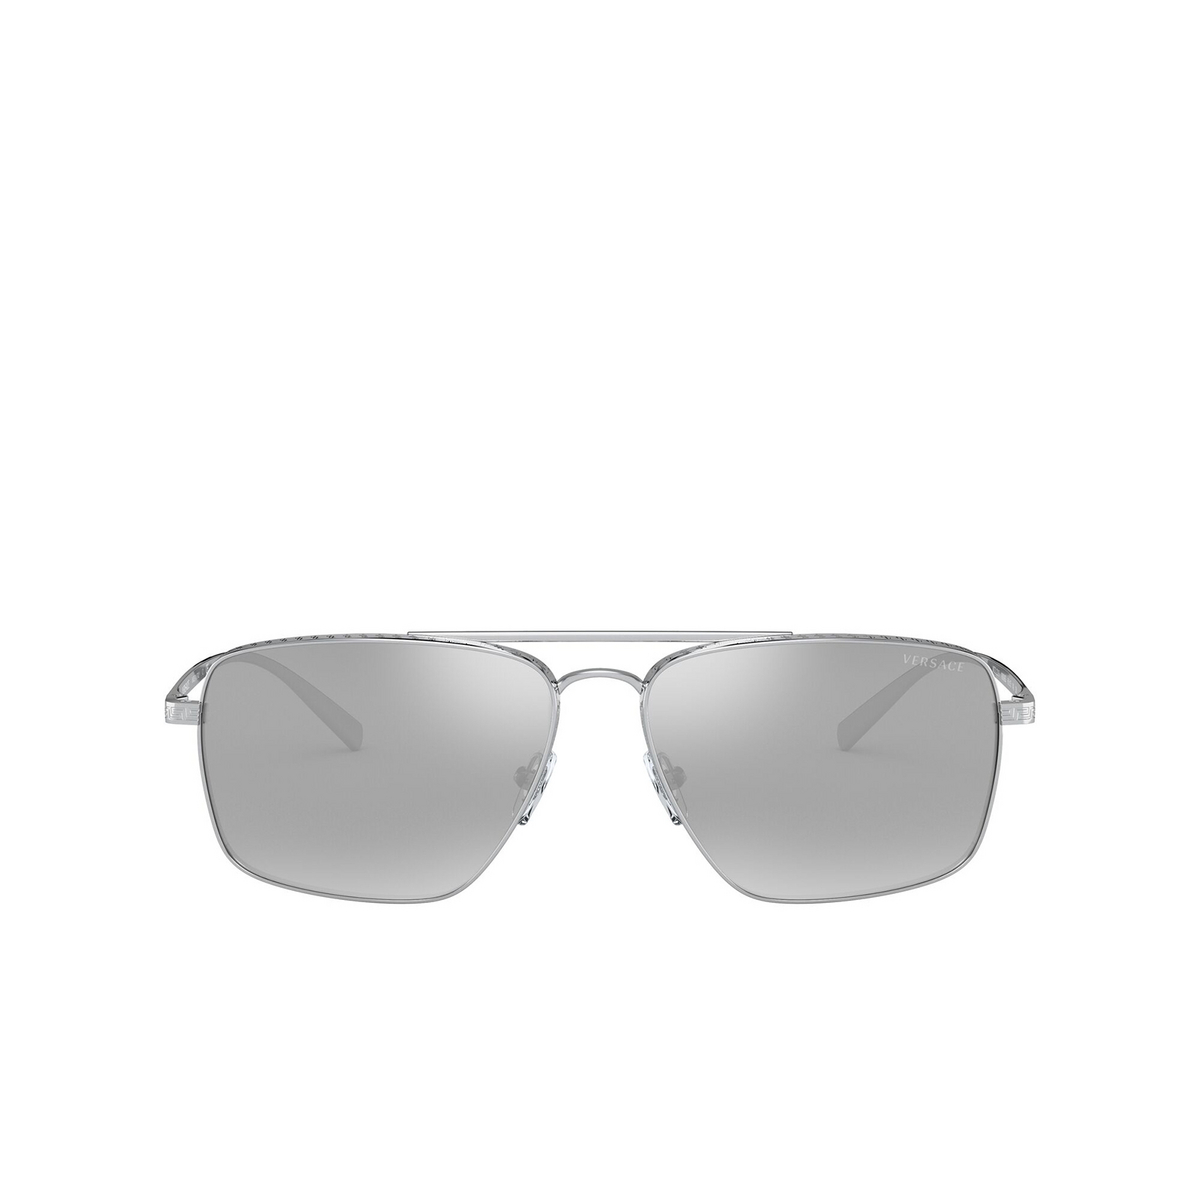 Versace® Square Sunglasses: VE2216 color Silver 10006G - front view.